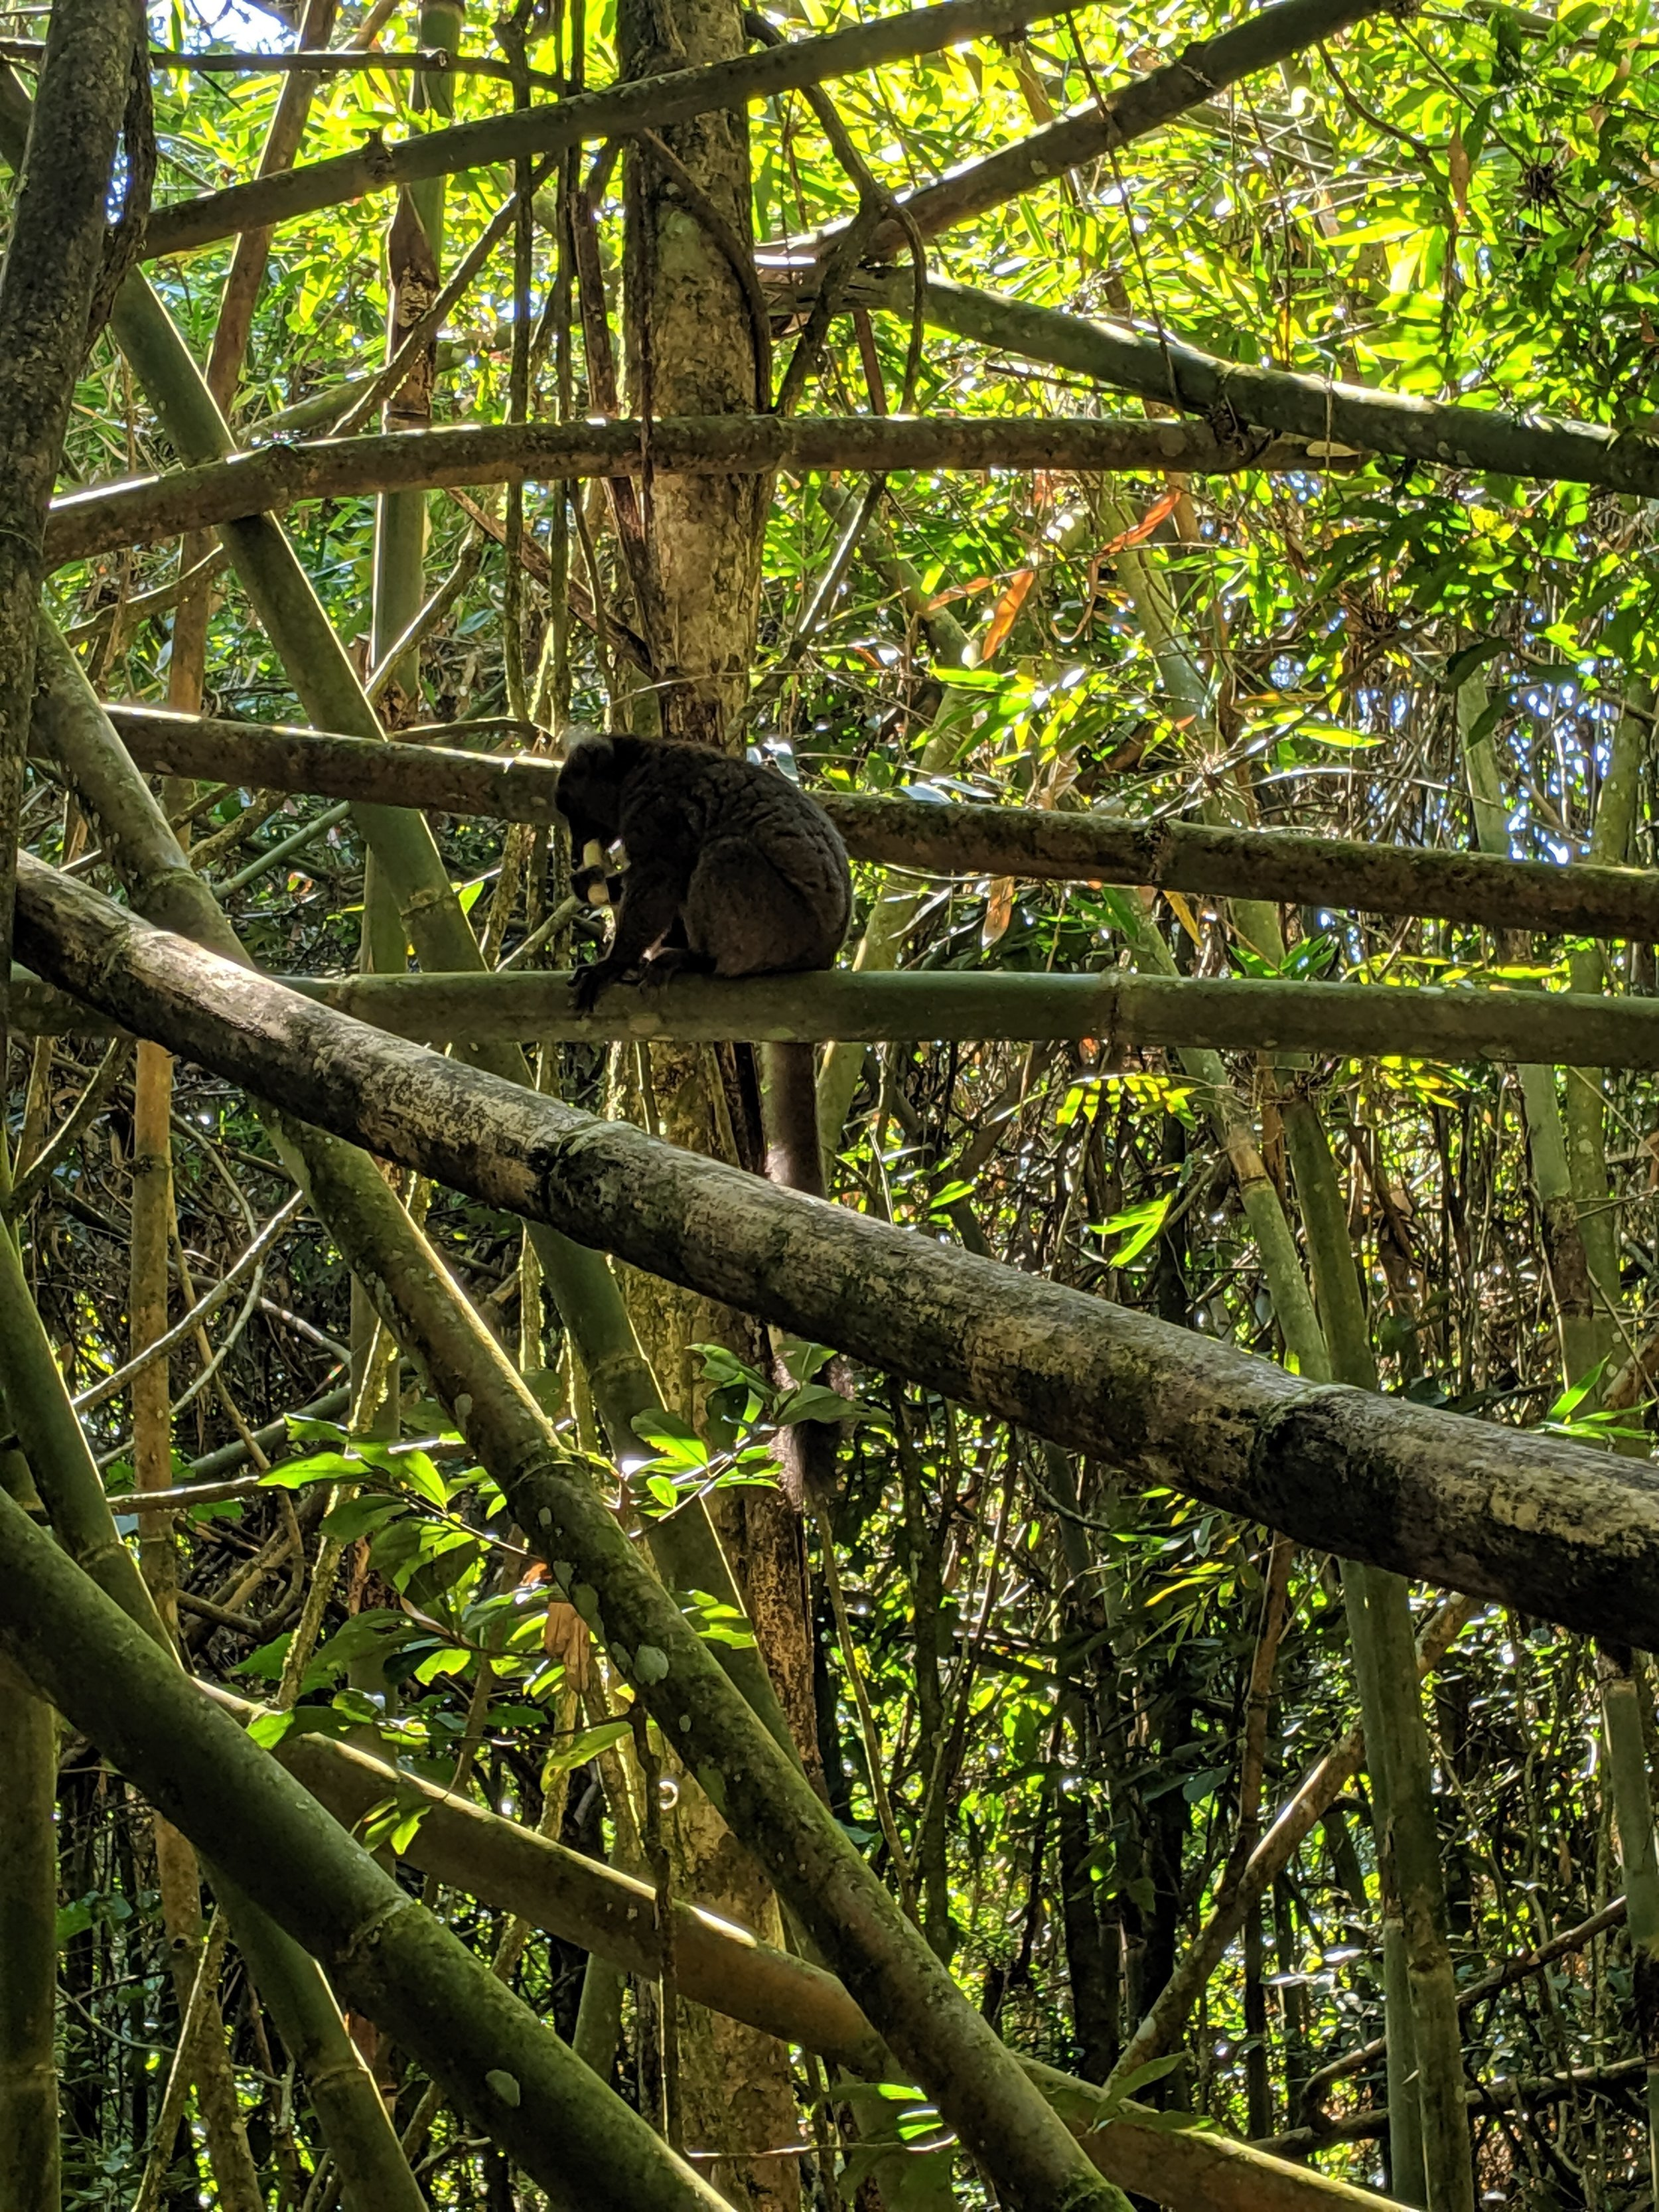 As you might expect, a greater bamboo lemur eating bamboo.